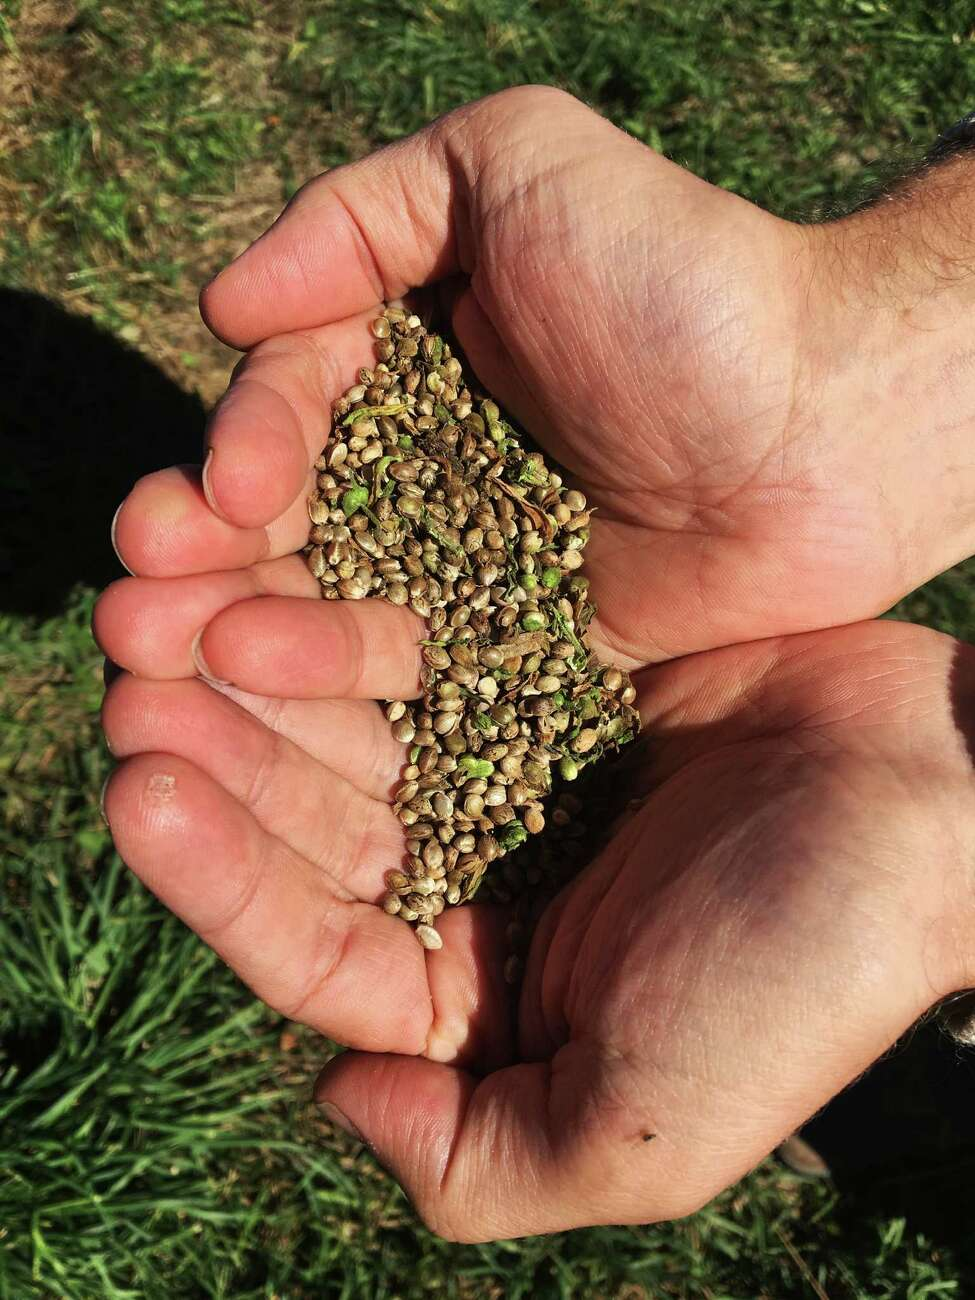 This Sept. 25, 2016 photo, shows seeds from the first legal crop of industrial hemp grown on JD Farms in Eaton, N.Y. JD Farms in central New York harvested the state?'s first legal hemp this fall under a university research partnership. (AP Photo/Mary Esch) ORG XMIT: RPME102